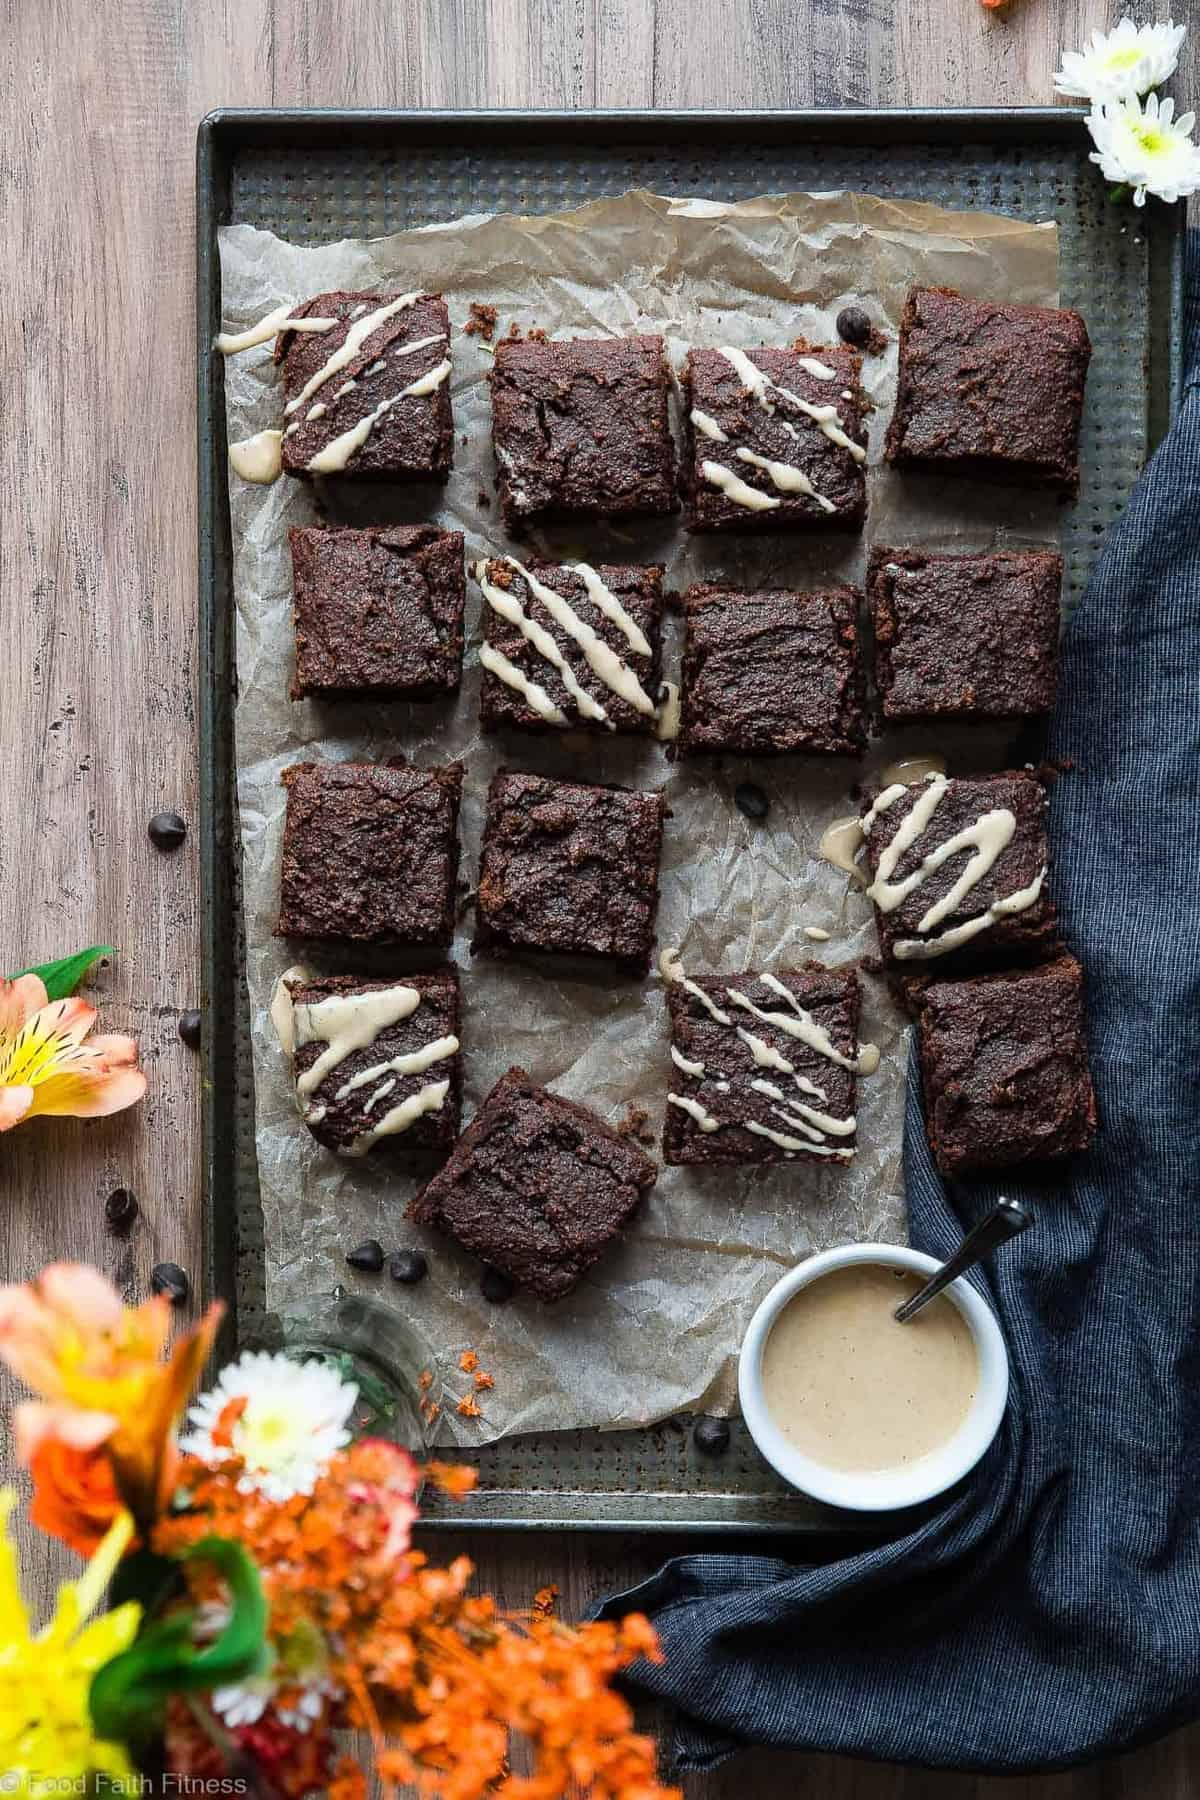 Paleo Sweet Potato Brownies - These healthy brownies are SO dense, chewy and moist! No one will believe they use sweet potato and are gluten/grain/dairy and refined sugar free! | #Foodfaithfitness | #Paleo #Glutenfree #Healthy #Brownies #Grainfree